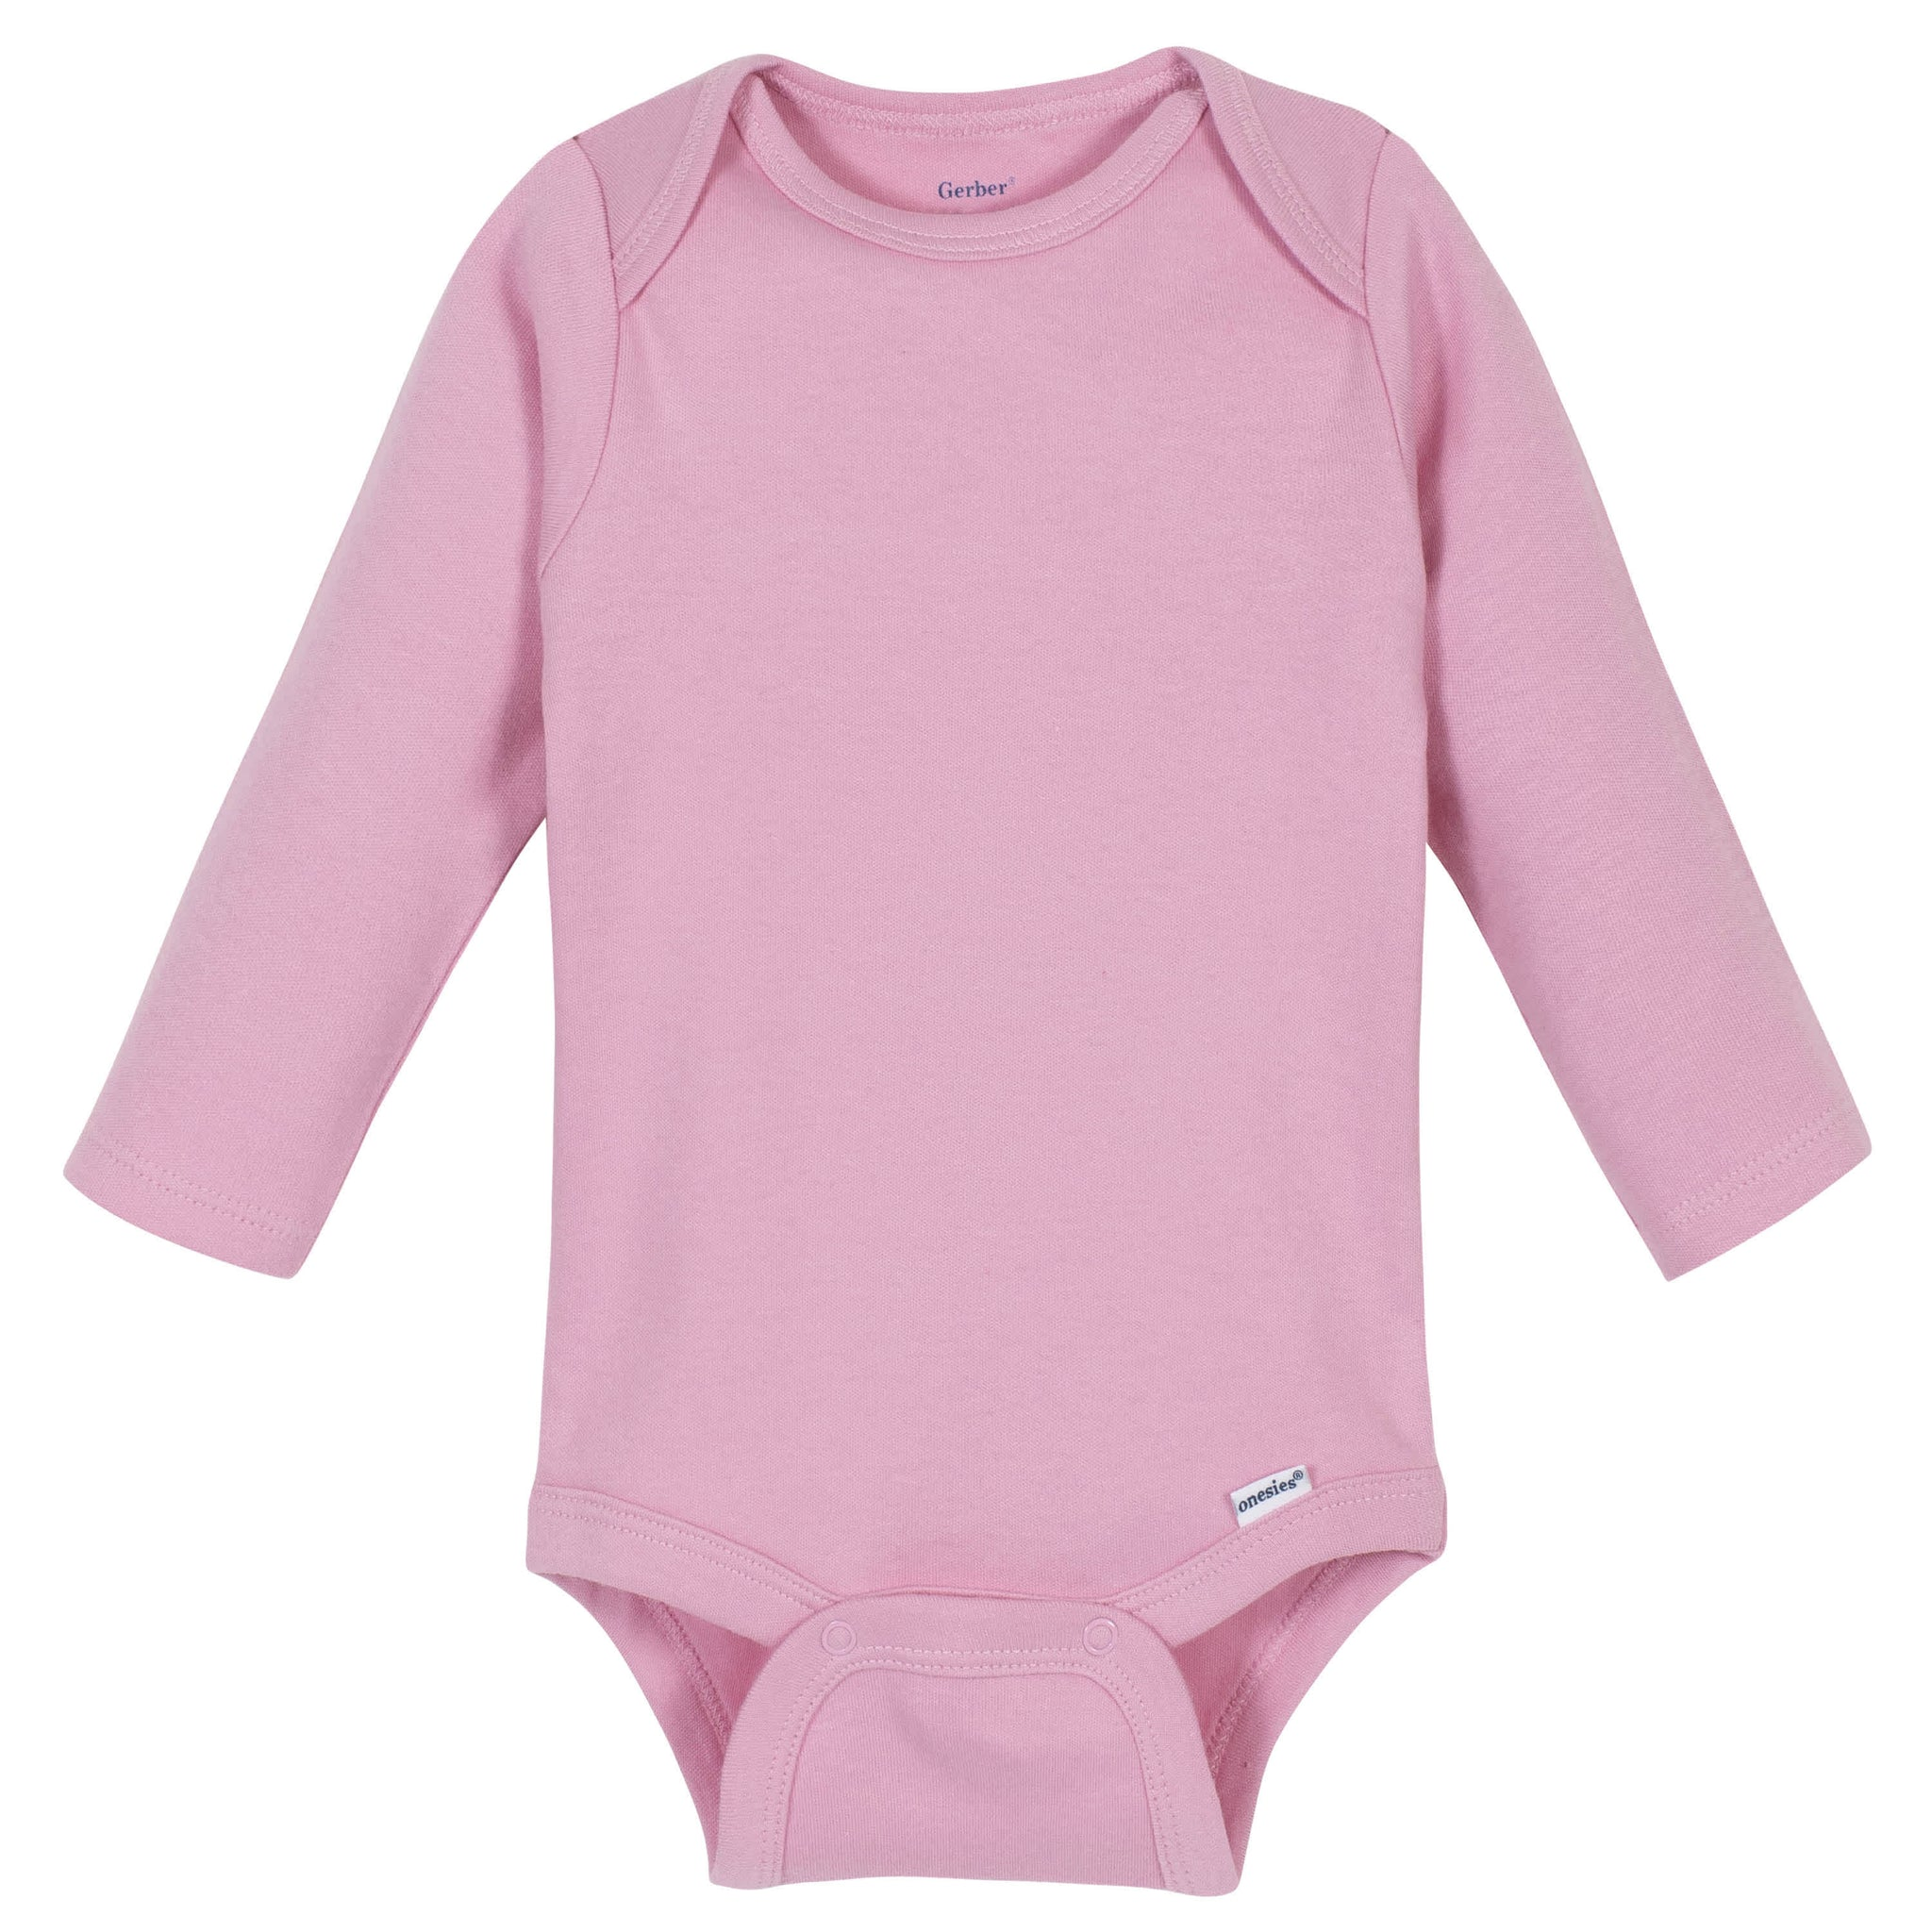 Gerber® Premium Light Pink Long Sleeve Onesies® Brand Bodysuit - 10 Colors Available